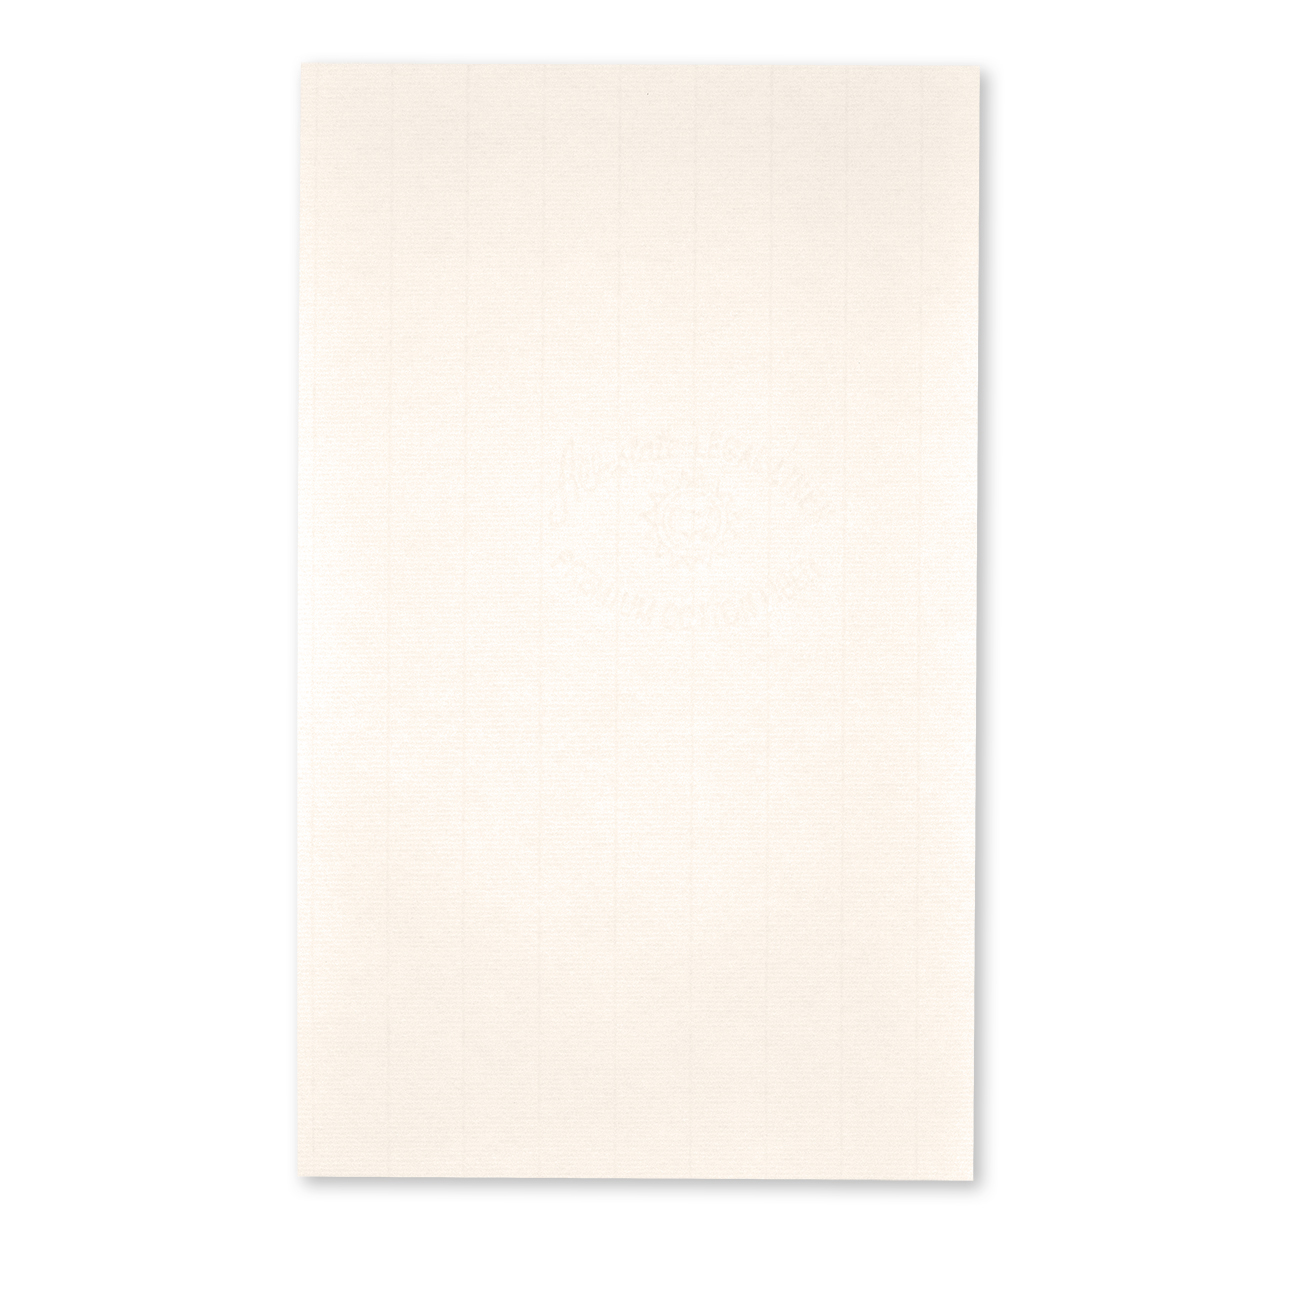 Will Continuation Pages, Style 501/502 and 601/602 Style 501/502, Legal Size, Will Blank Continuation Sheet, Natural Laid, ASL Linen, 25% Cotton, 100/PK